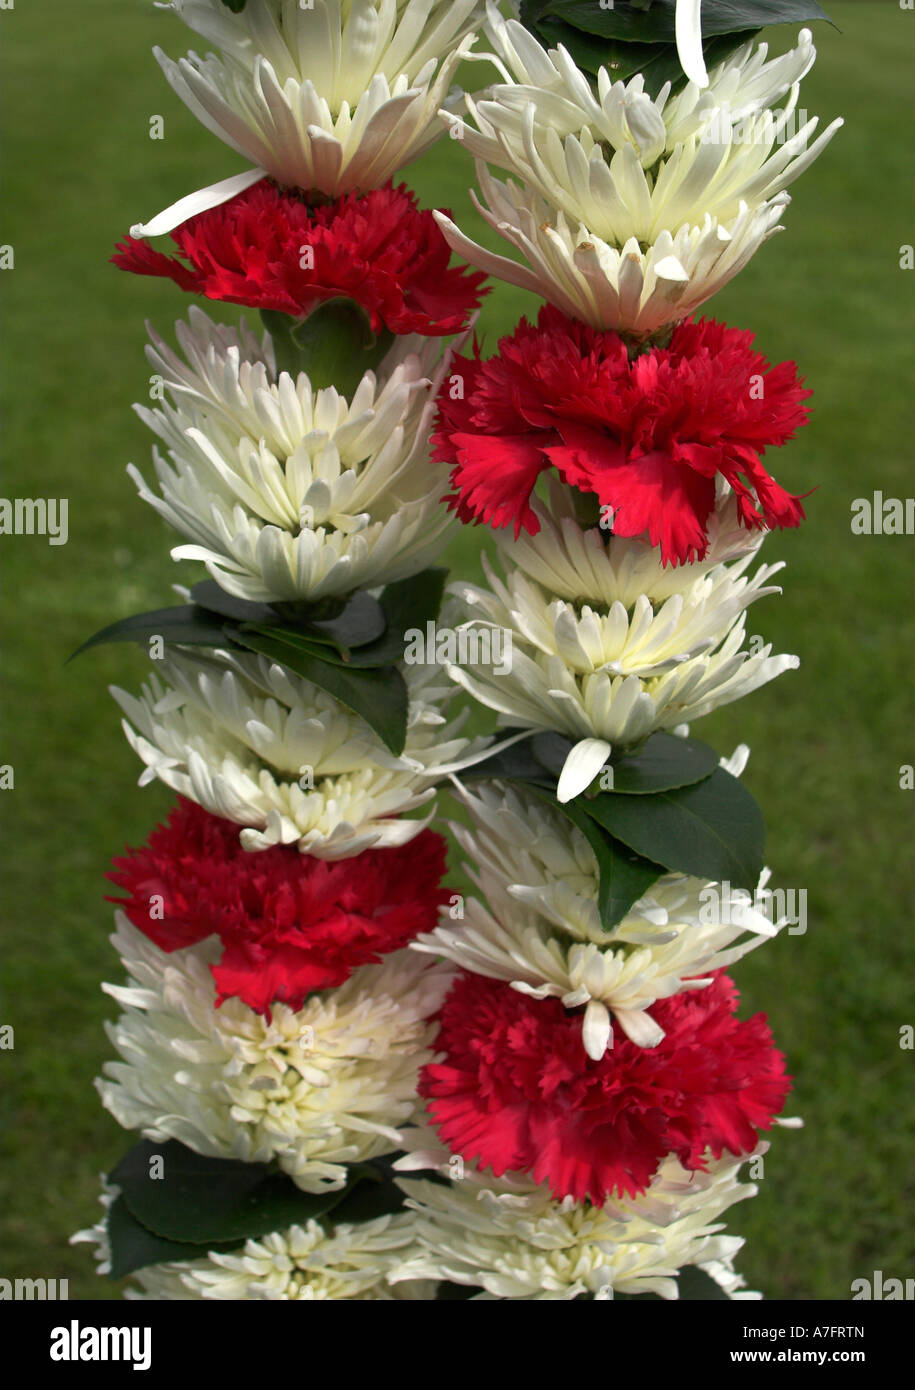 indian wedding flower garland stock photo royalty free image 11827604 alamy. Black Bedroom Furniture Sets. Home Design Ideas